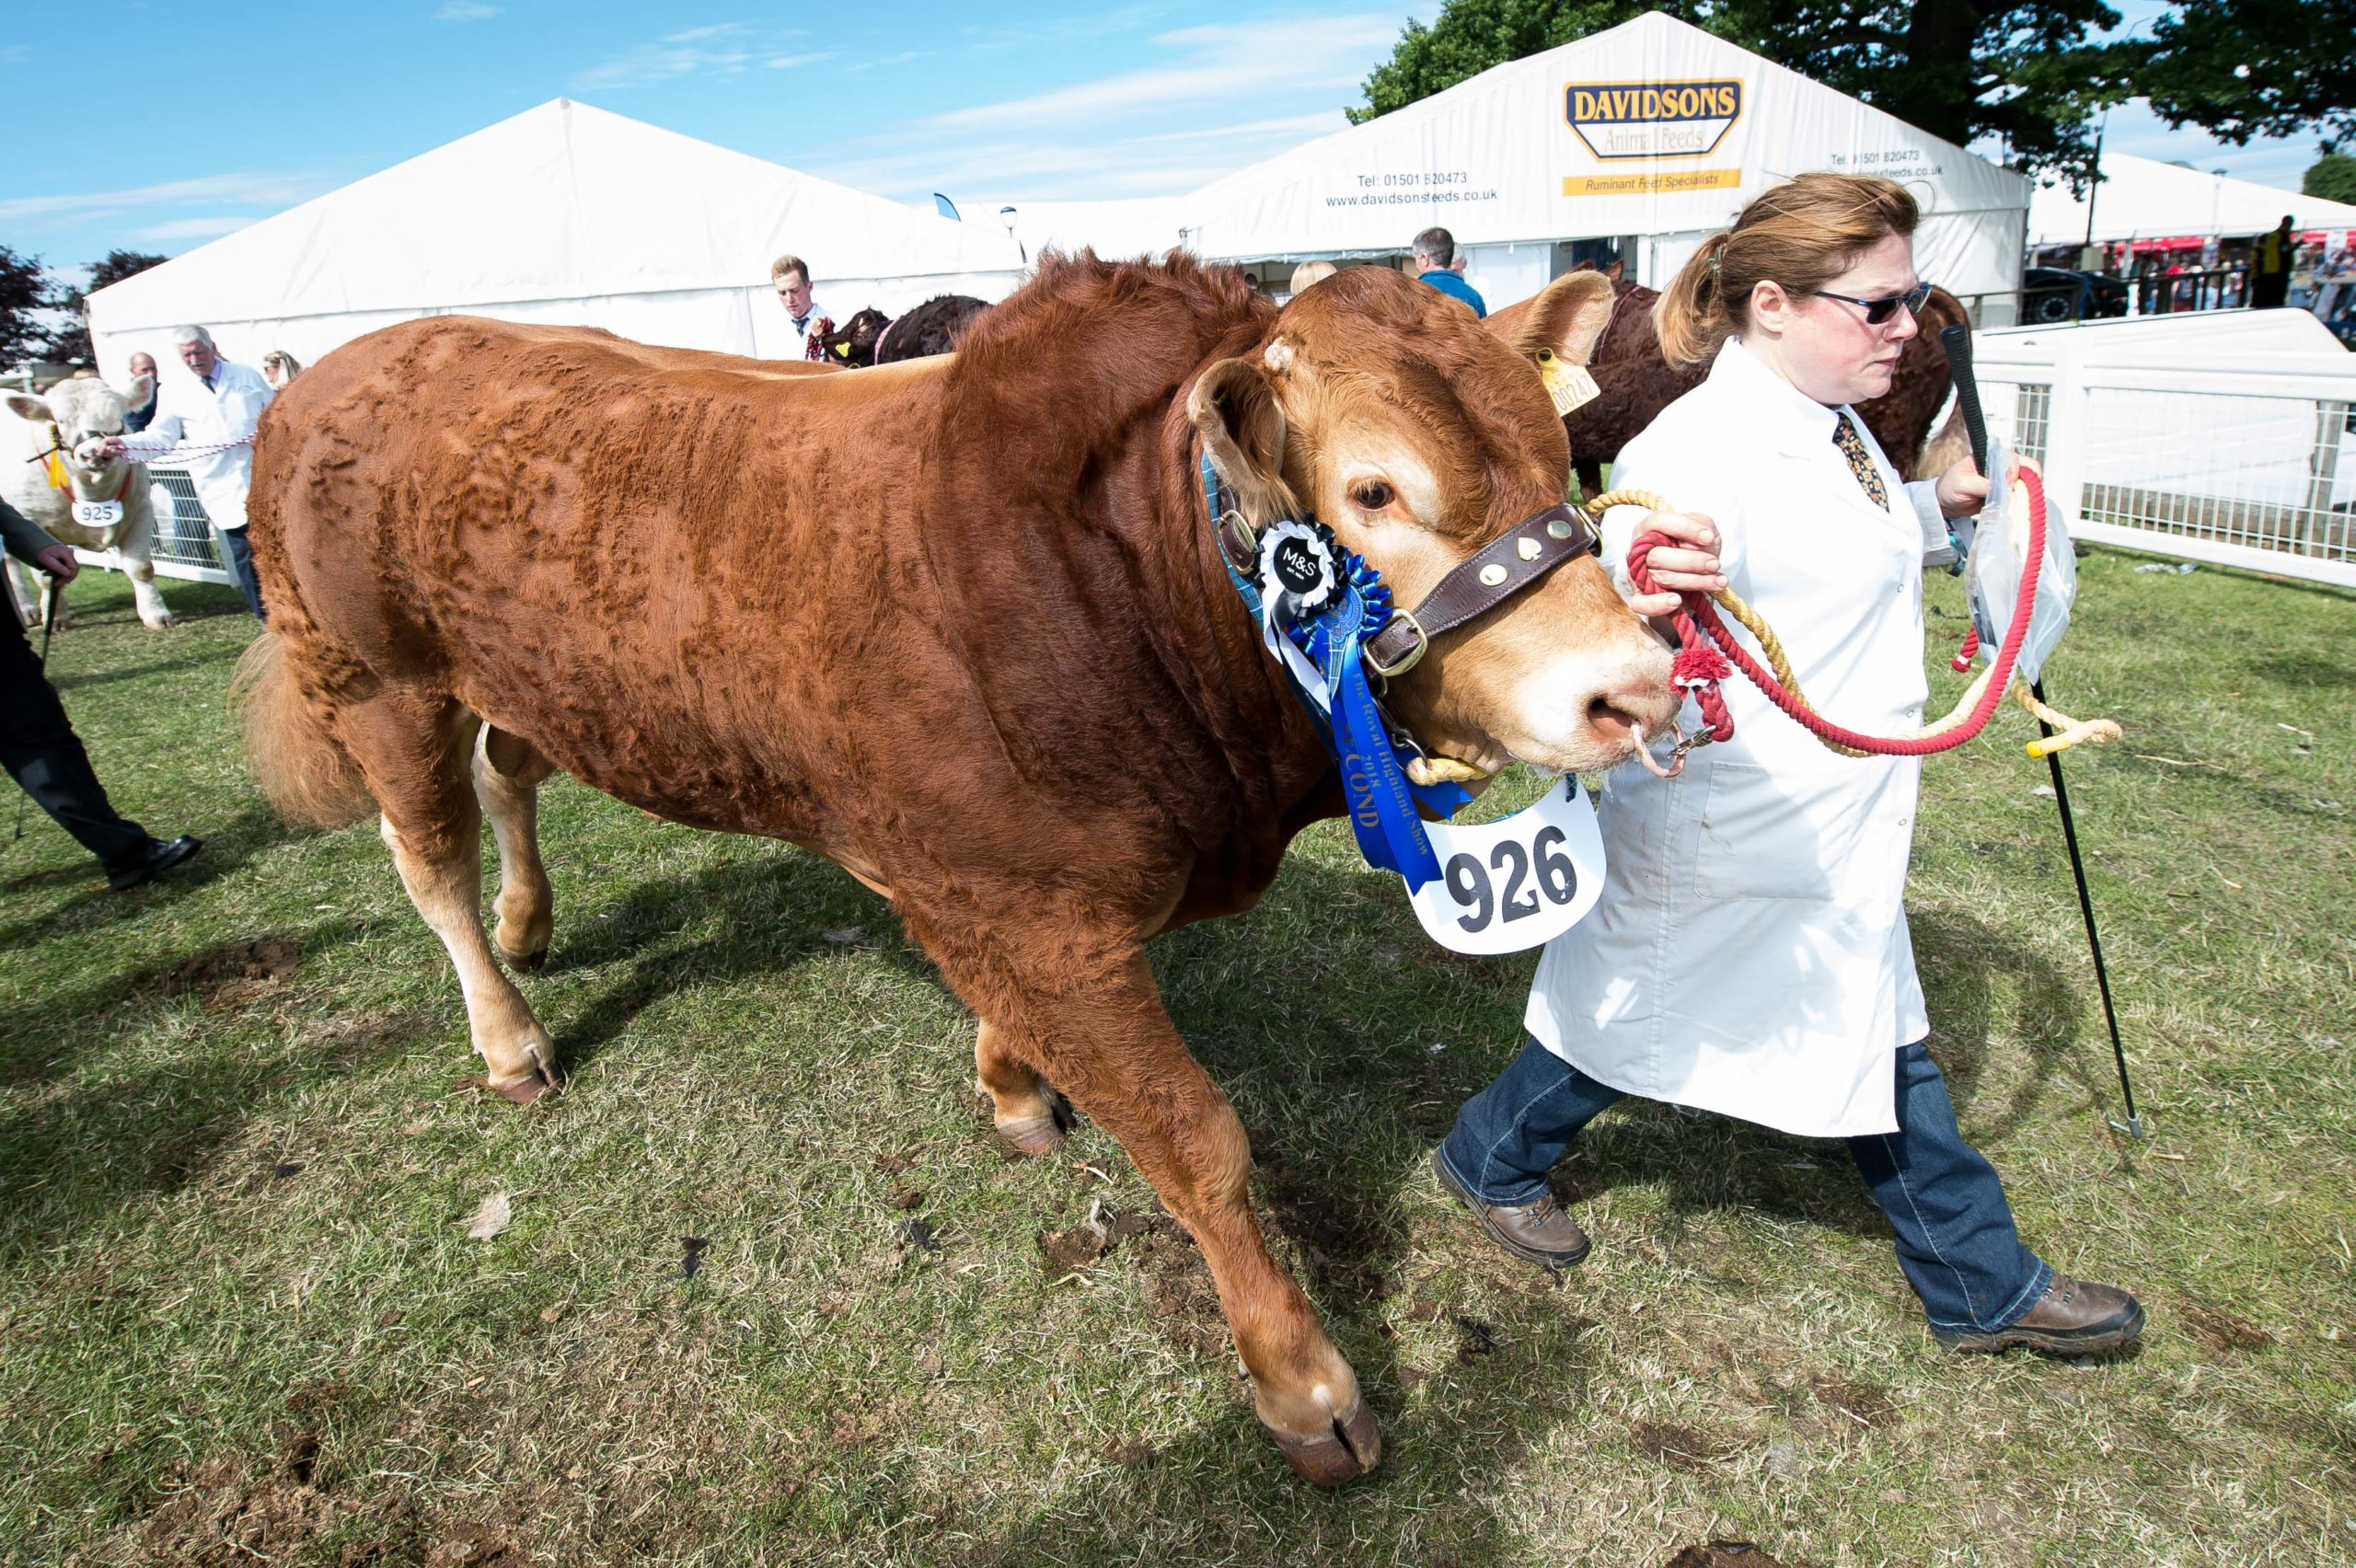 The Royal Highland Show in 2018.